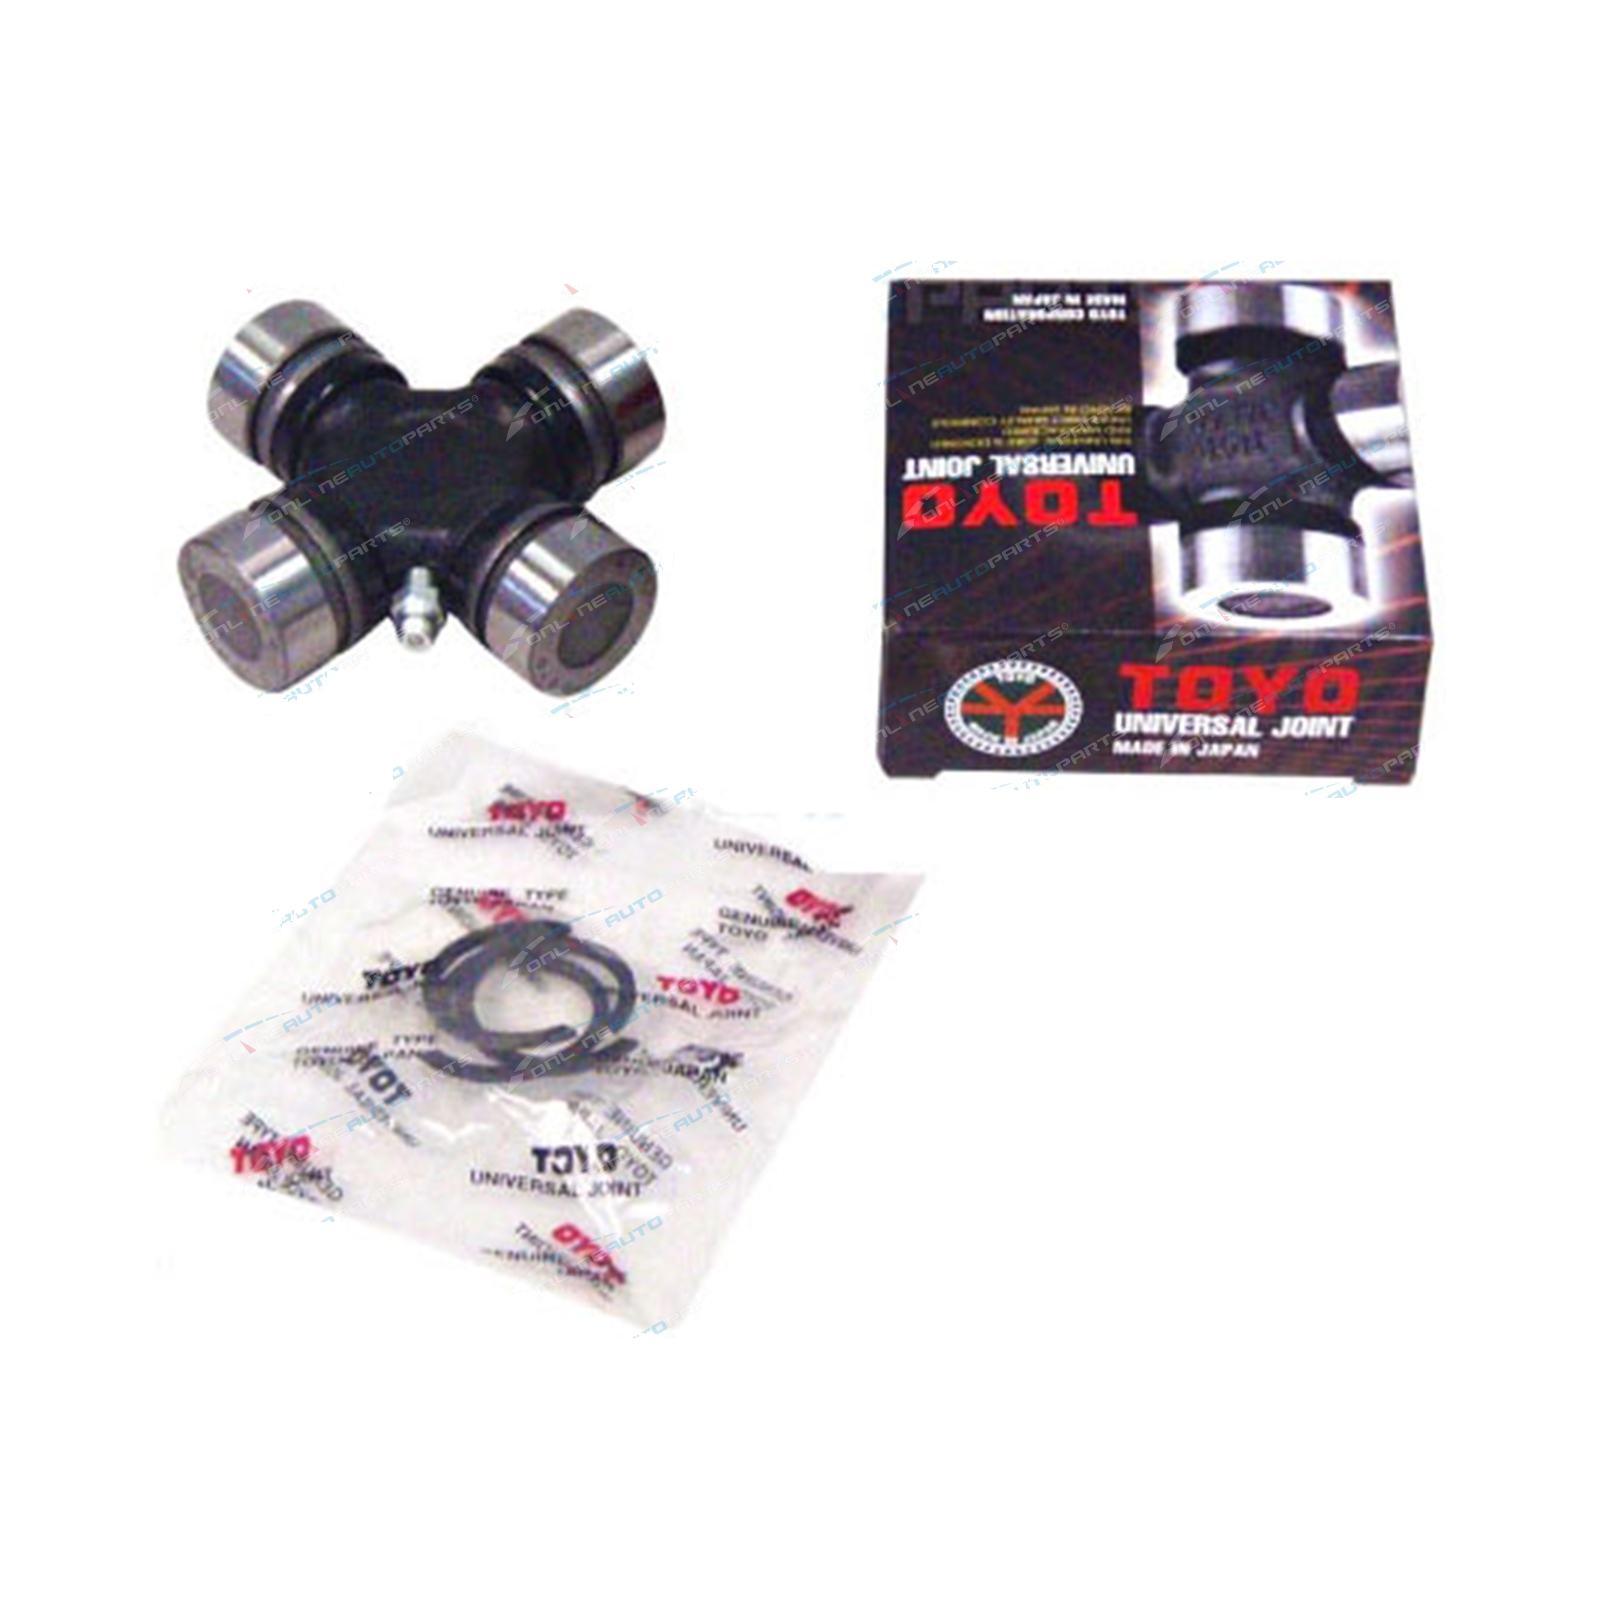 Universal Joint (Front or Middle or Rear) Toyo Japan